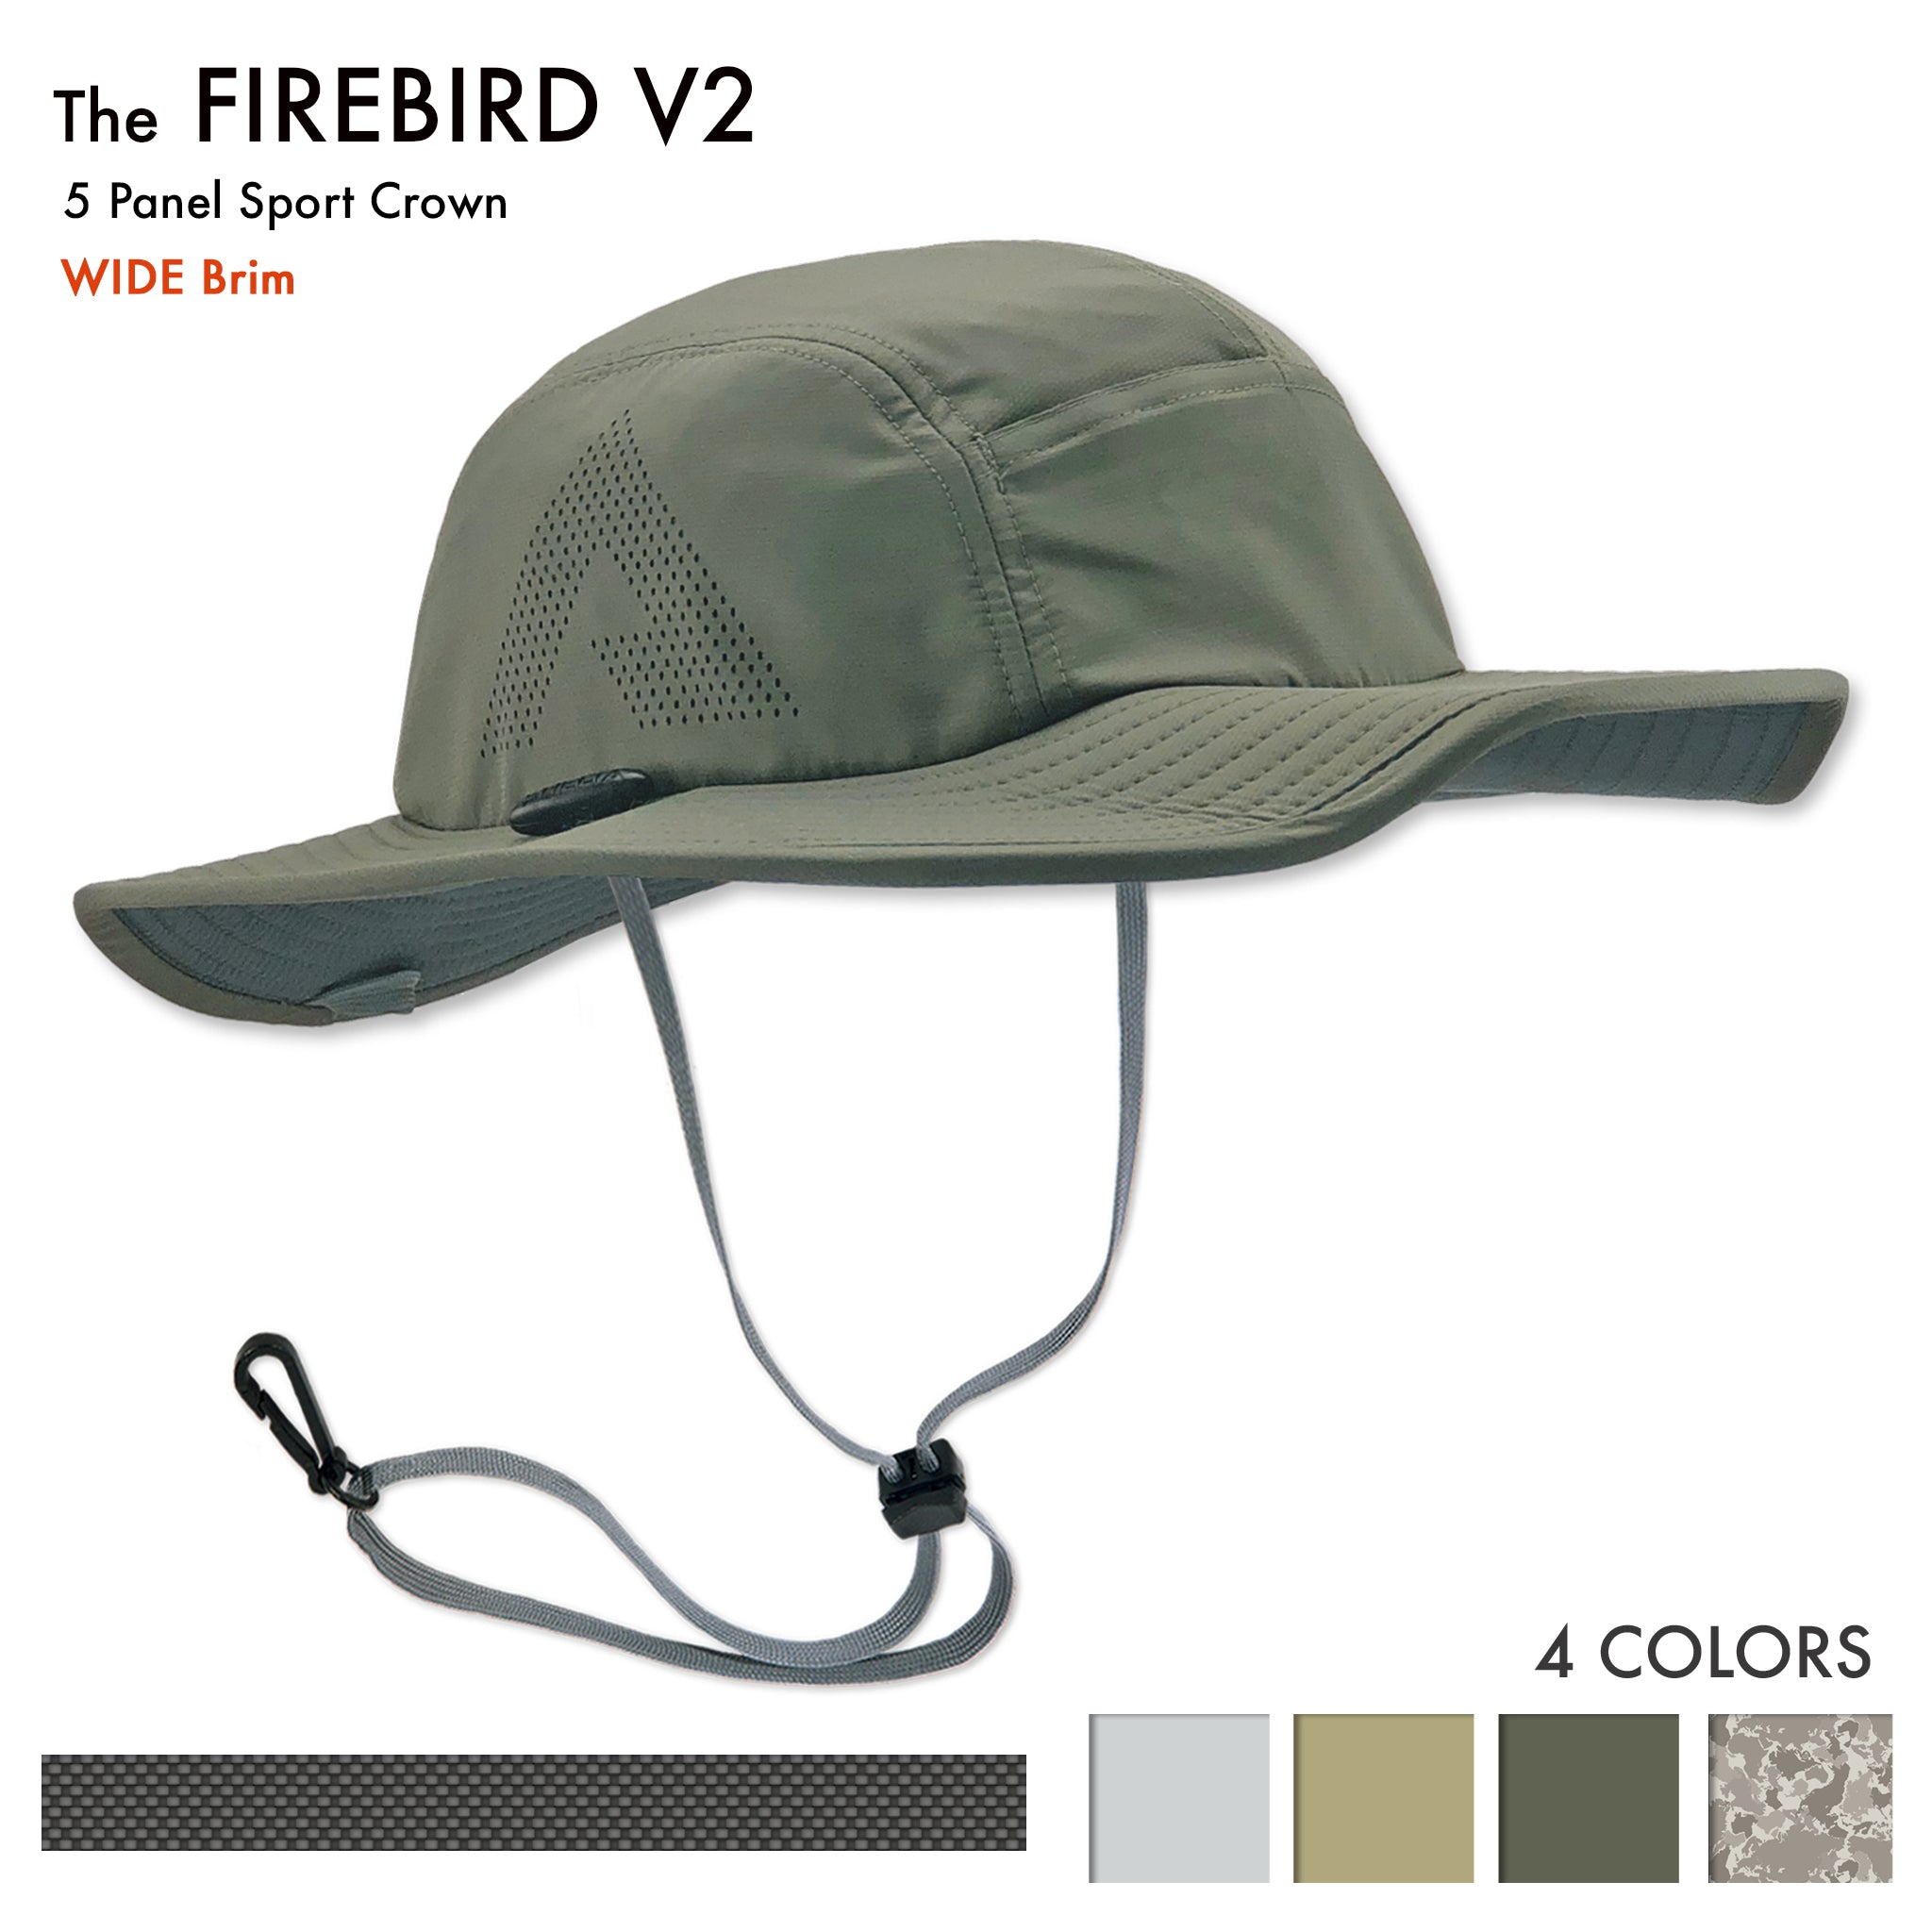 The Firebird sun hats are the best Sun Hats for hiking c6878f5791d